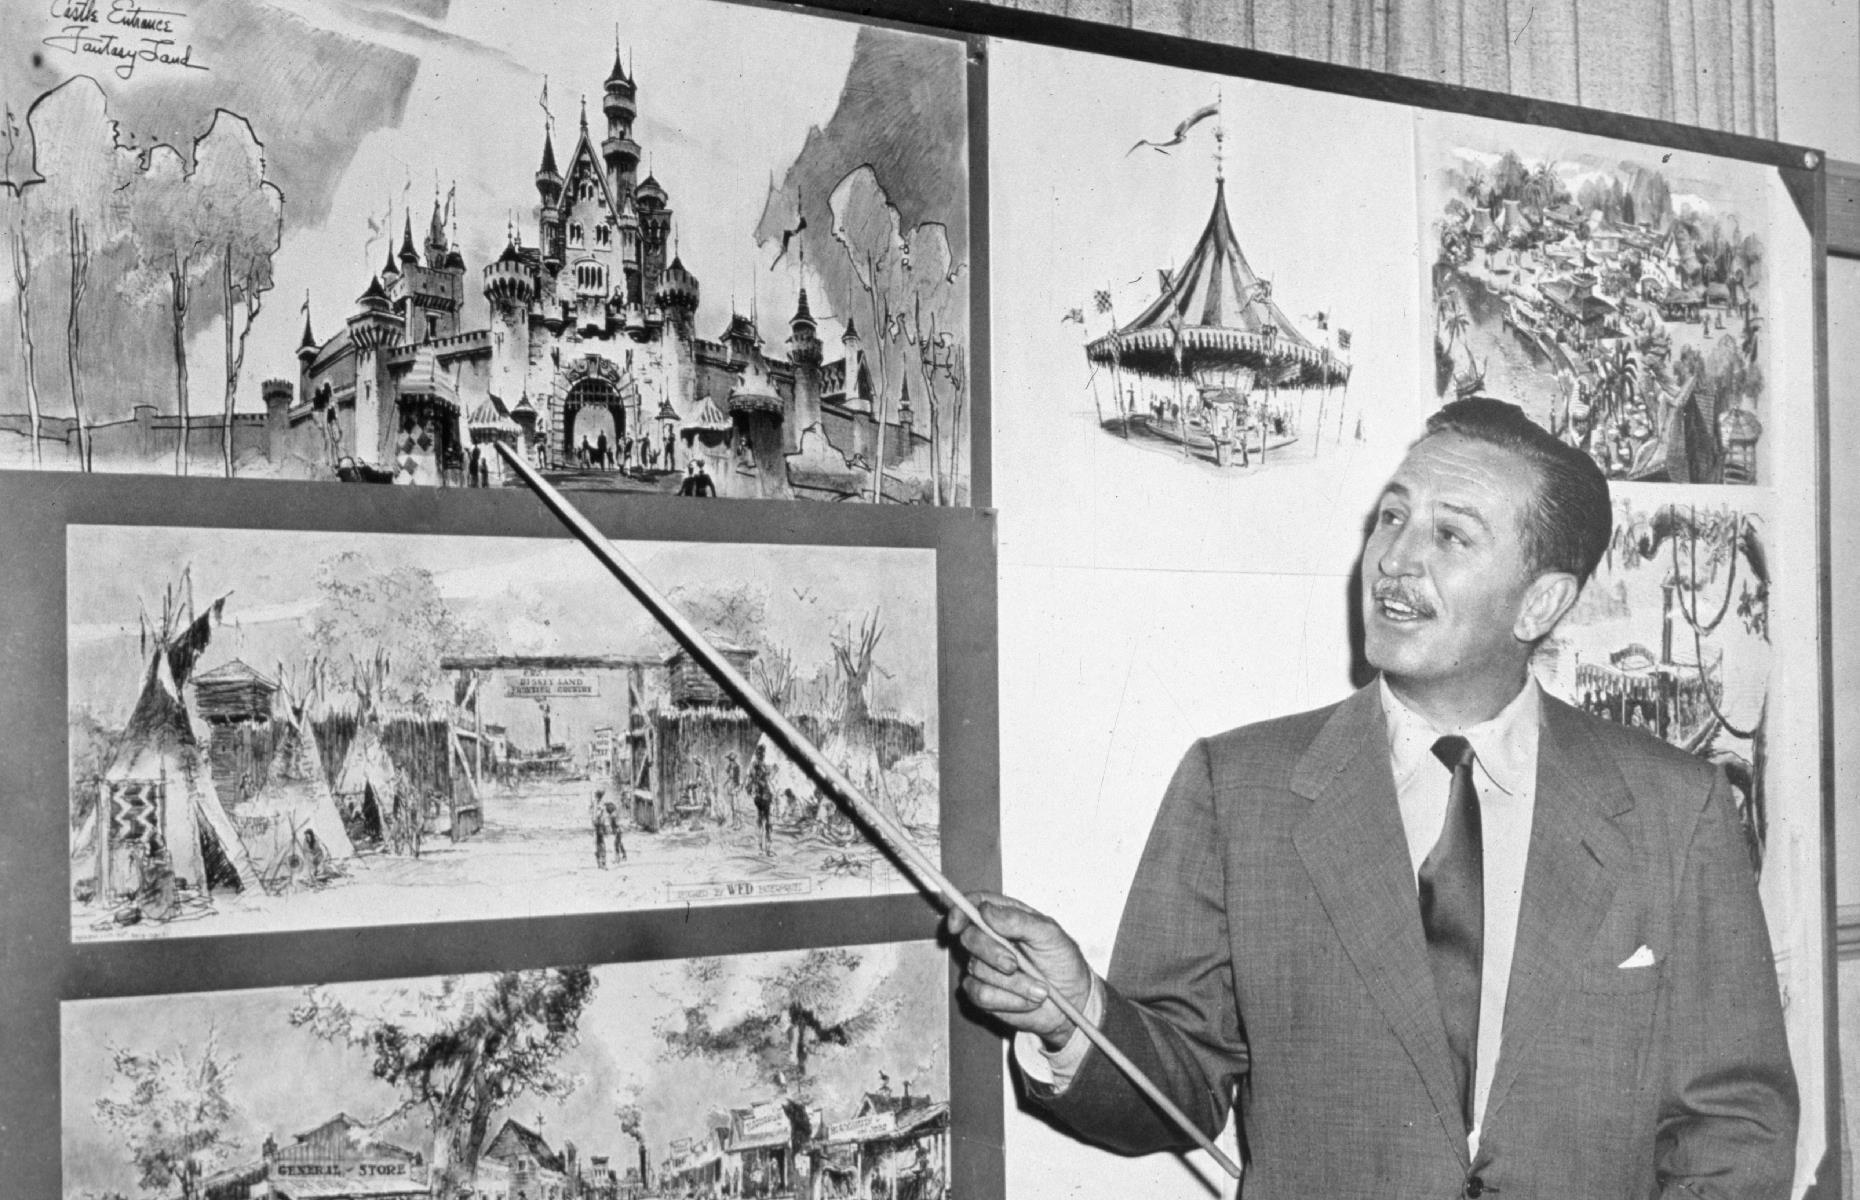 Slide 2 of 38: By the early 1950s, Walt Disney had already achieved immense success as an animator – but he wasn't one to rest on his laurels. Inspired by his own visits to amusement spots around the world, he conceived of the grandaddy of all theme parks – a magical place that would enchant both adults and kids alike. In this Fifties shot, he's seen explaining sketches of what would become Disneyland California.